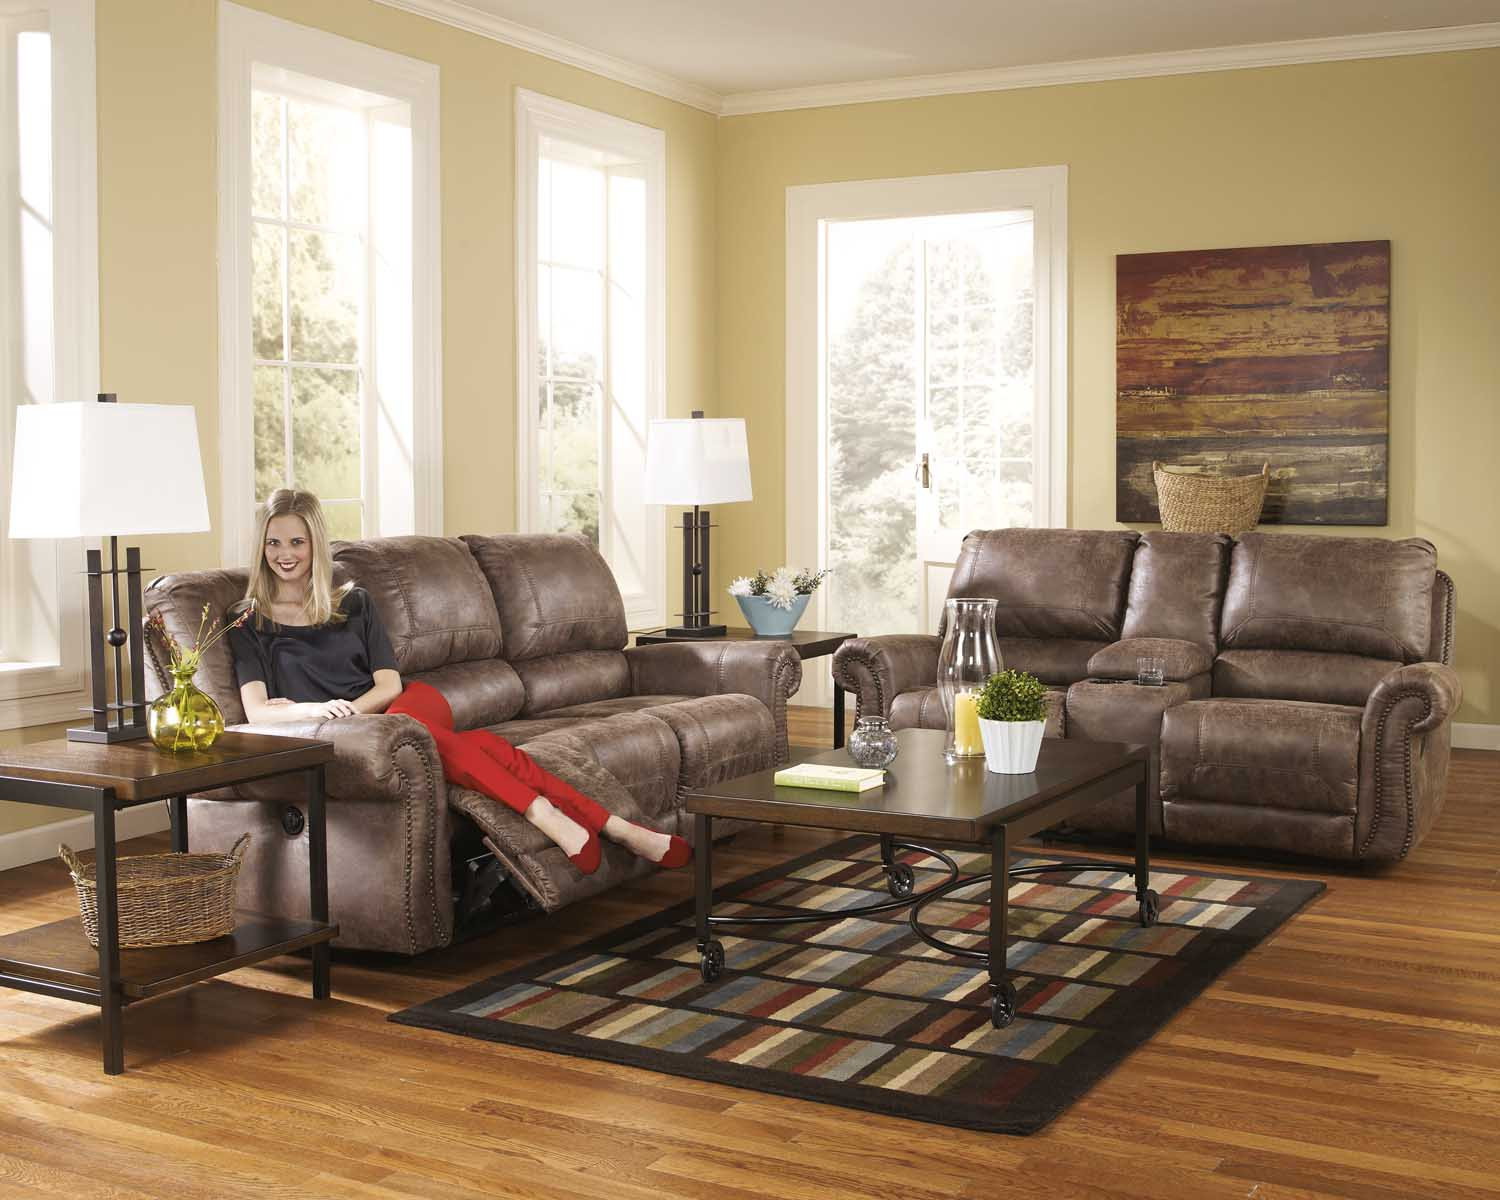 Living Room Sets For In Houston Tx 74100 In By Ashley Furniture In Houston Tx Ashley 74100 Oberson